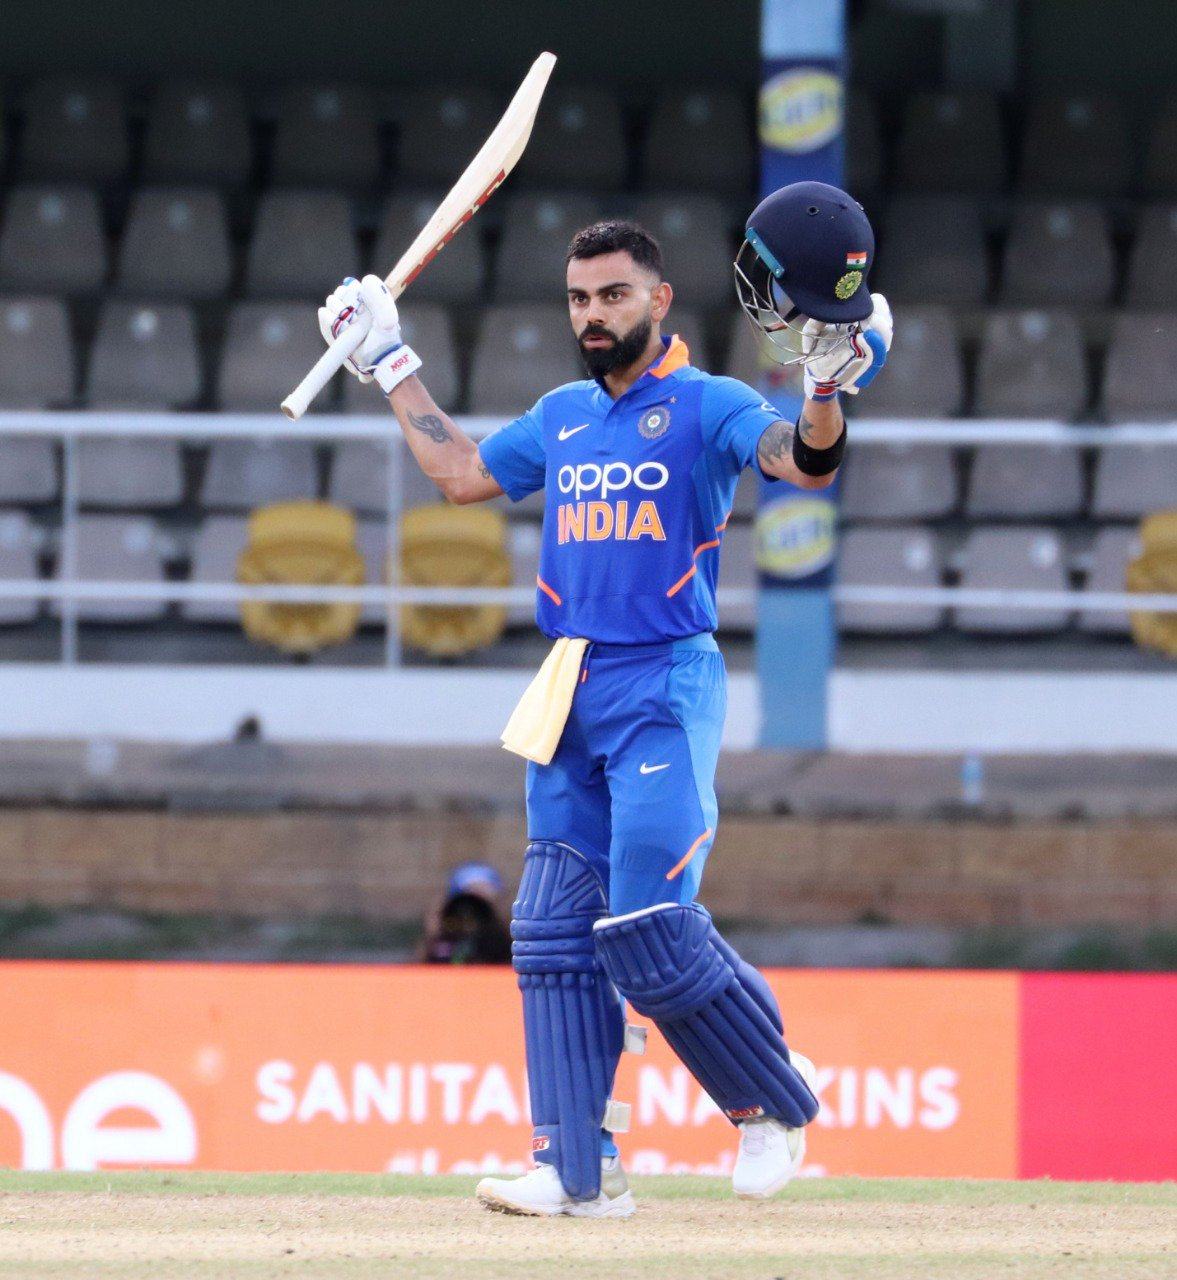 Virat Kohli scored his 43rd ODI century. Photo courtesy: Twitter/@BCCI